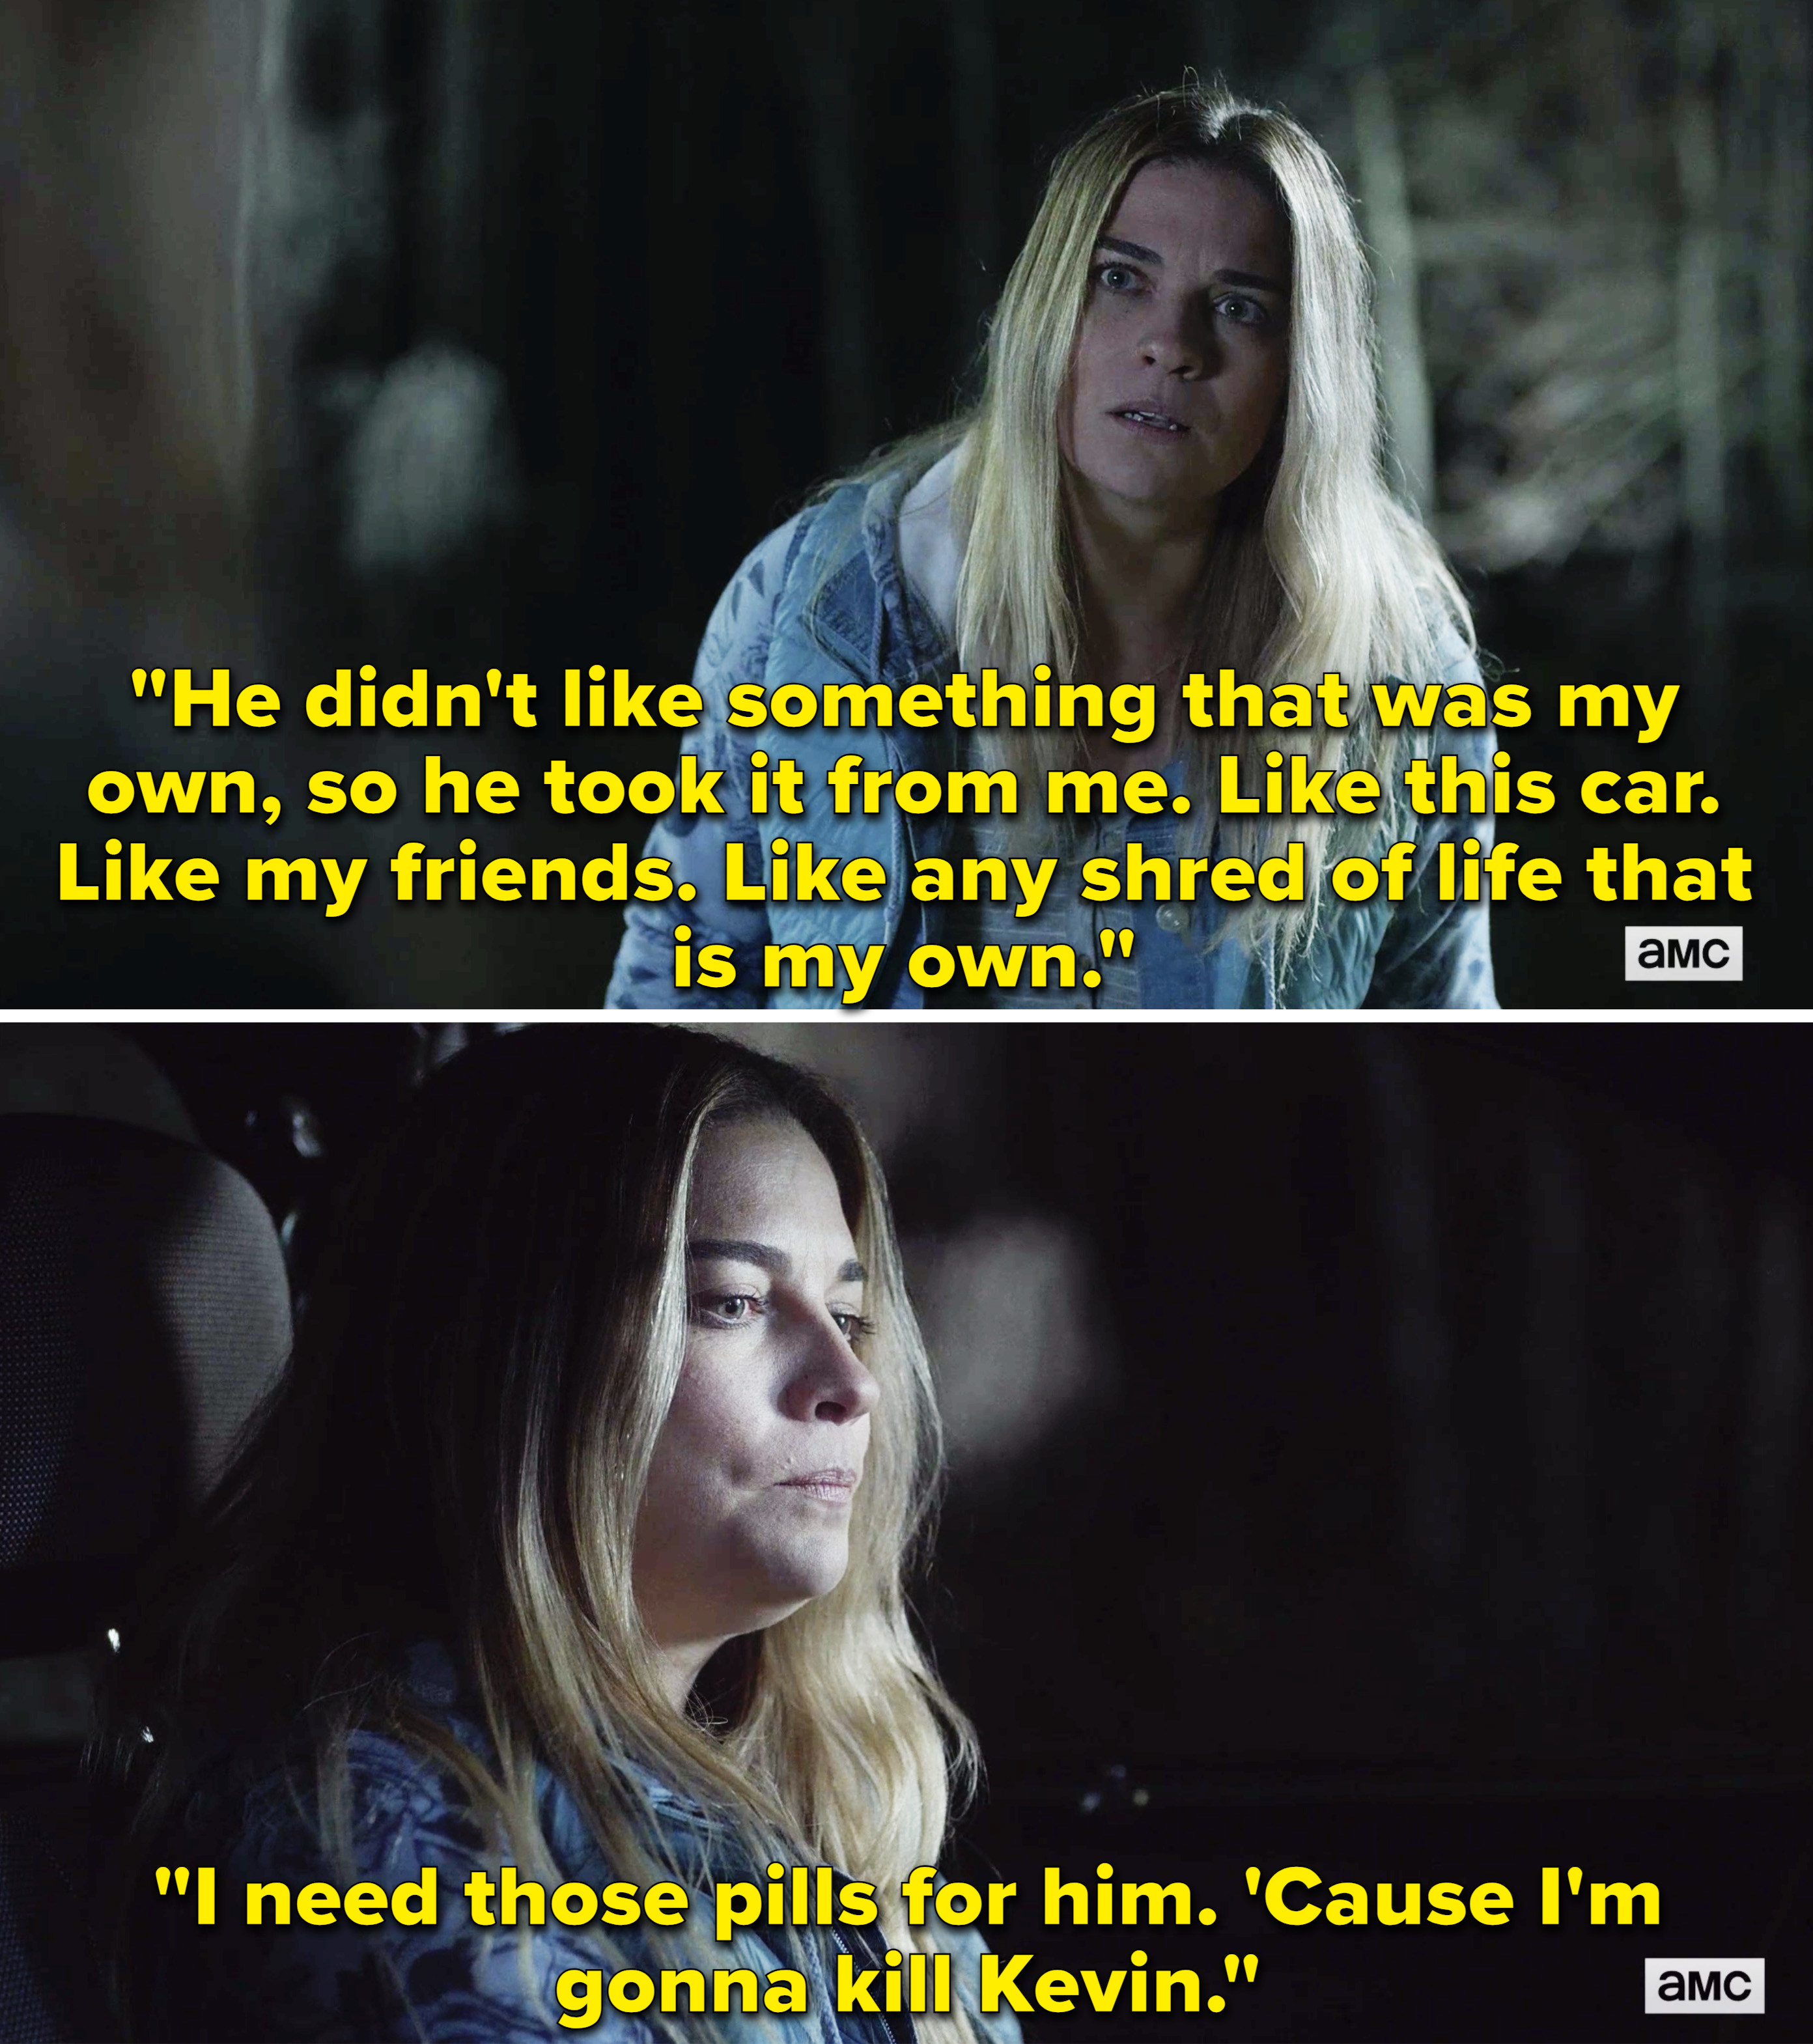 Allison saying how Kevin took everything that was hers and how she's going to use the pills to kill him